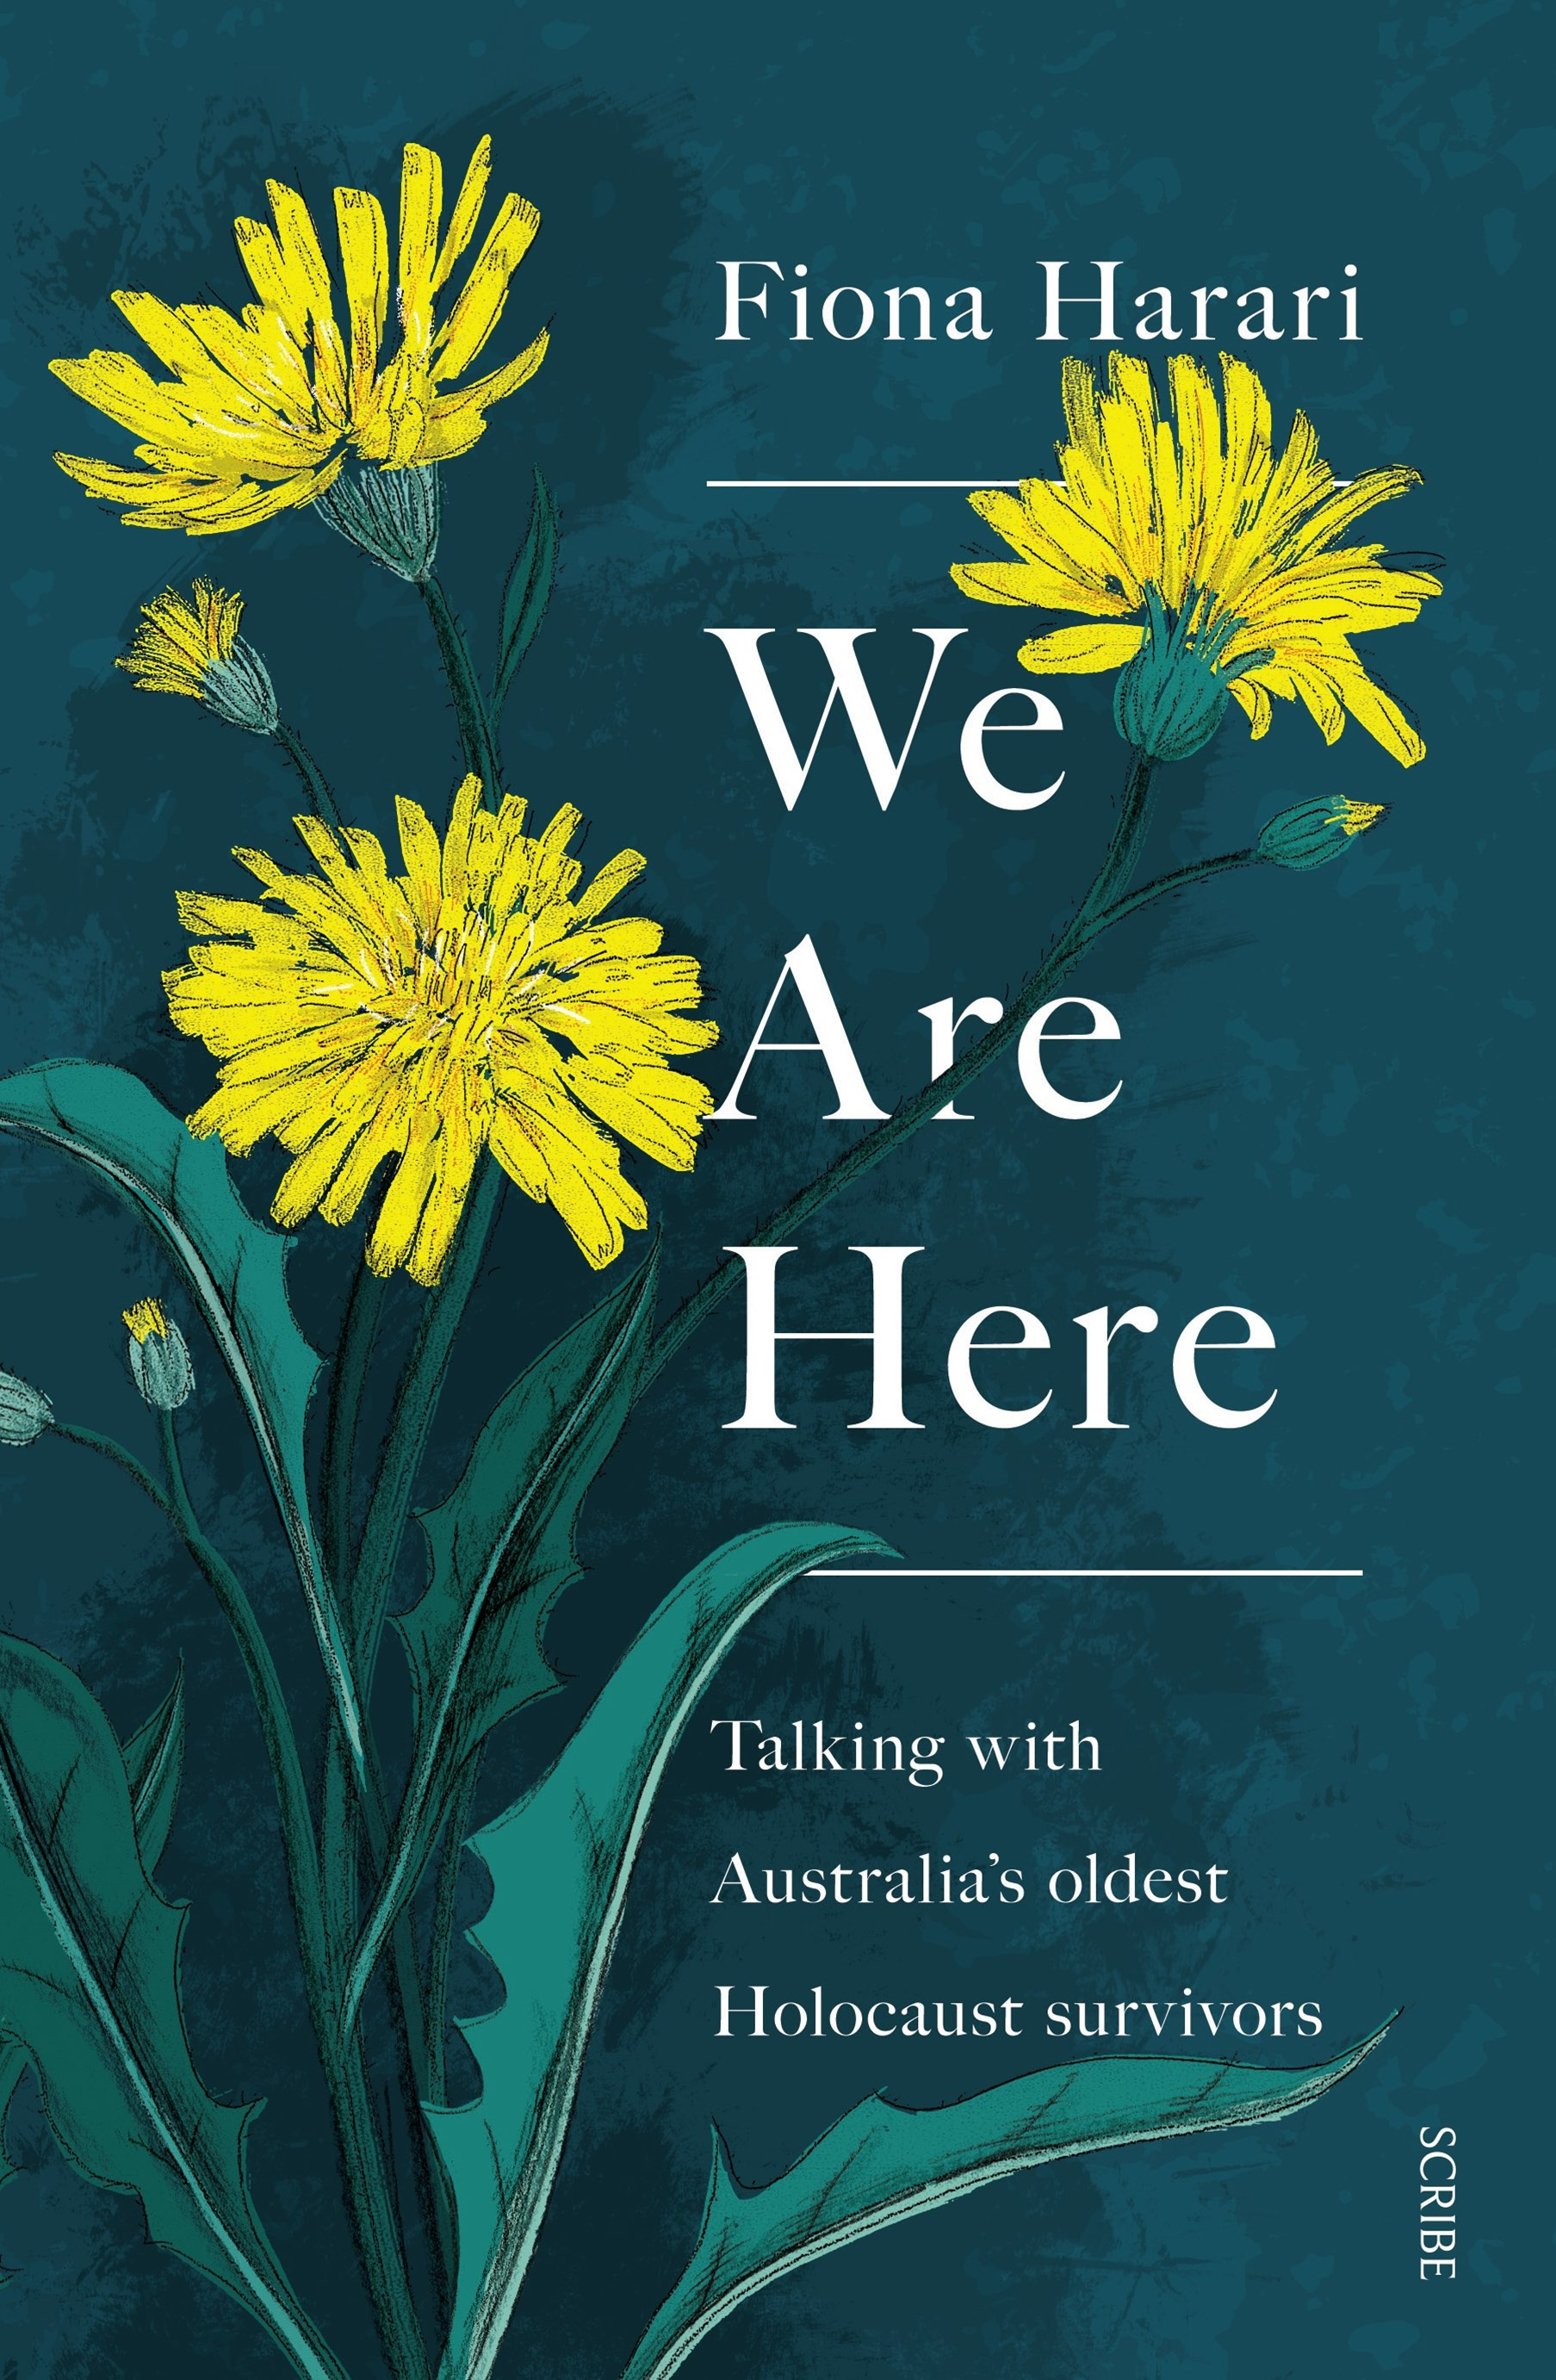 We Are Here: Talking with Australia's Oldest Holocaust Survivors